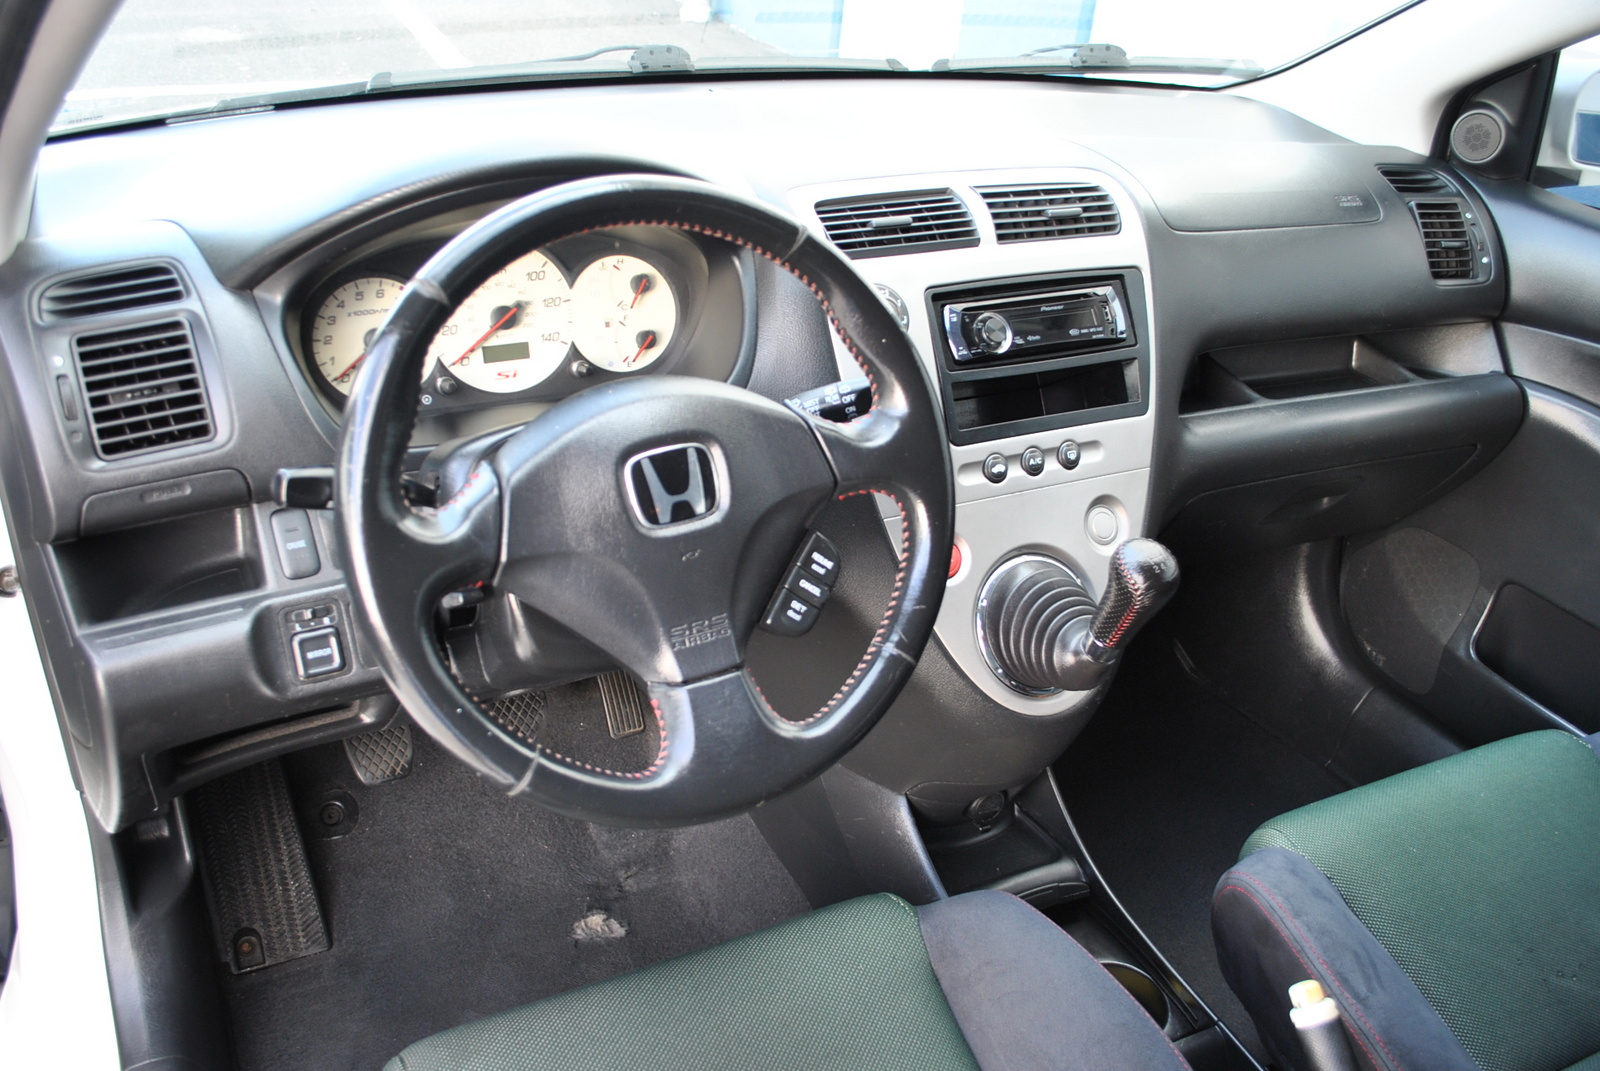 2002 Honda Civic Interior Pictures Cargurus